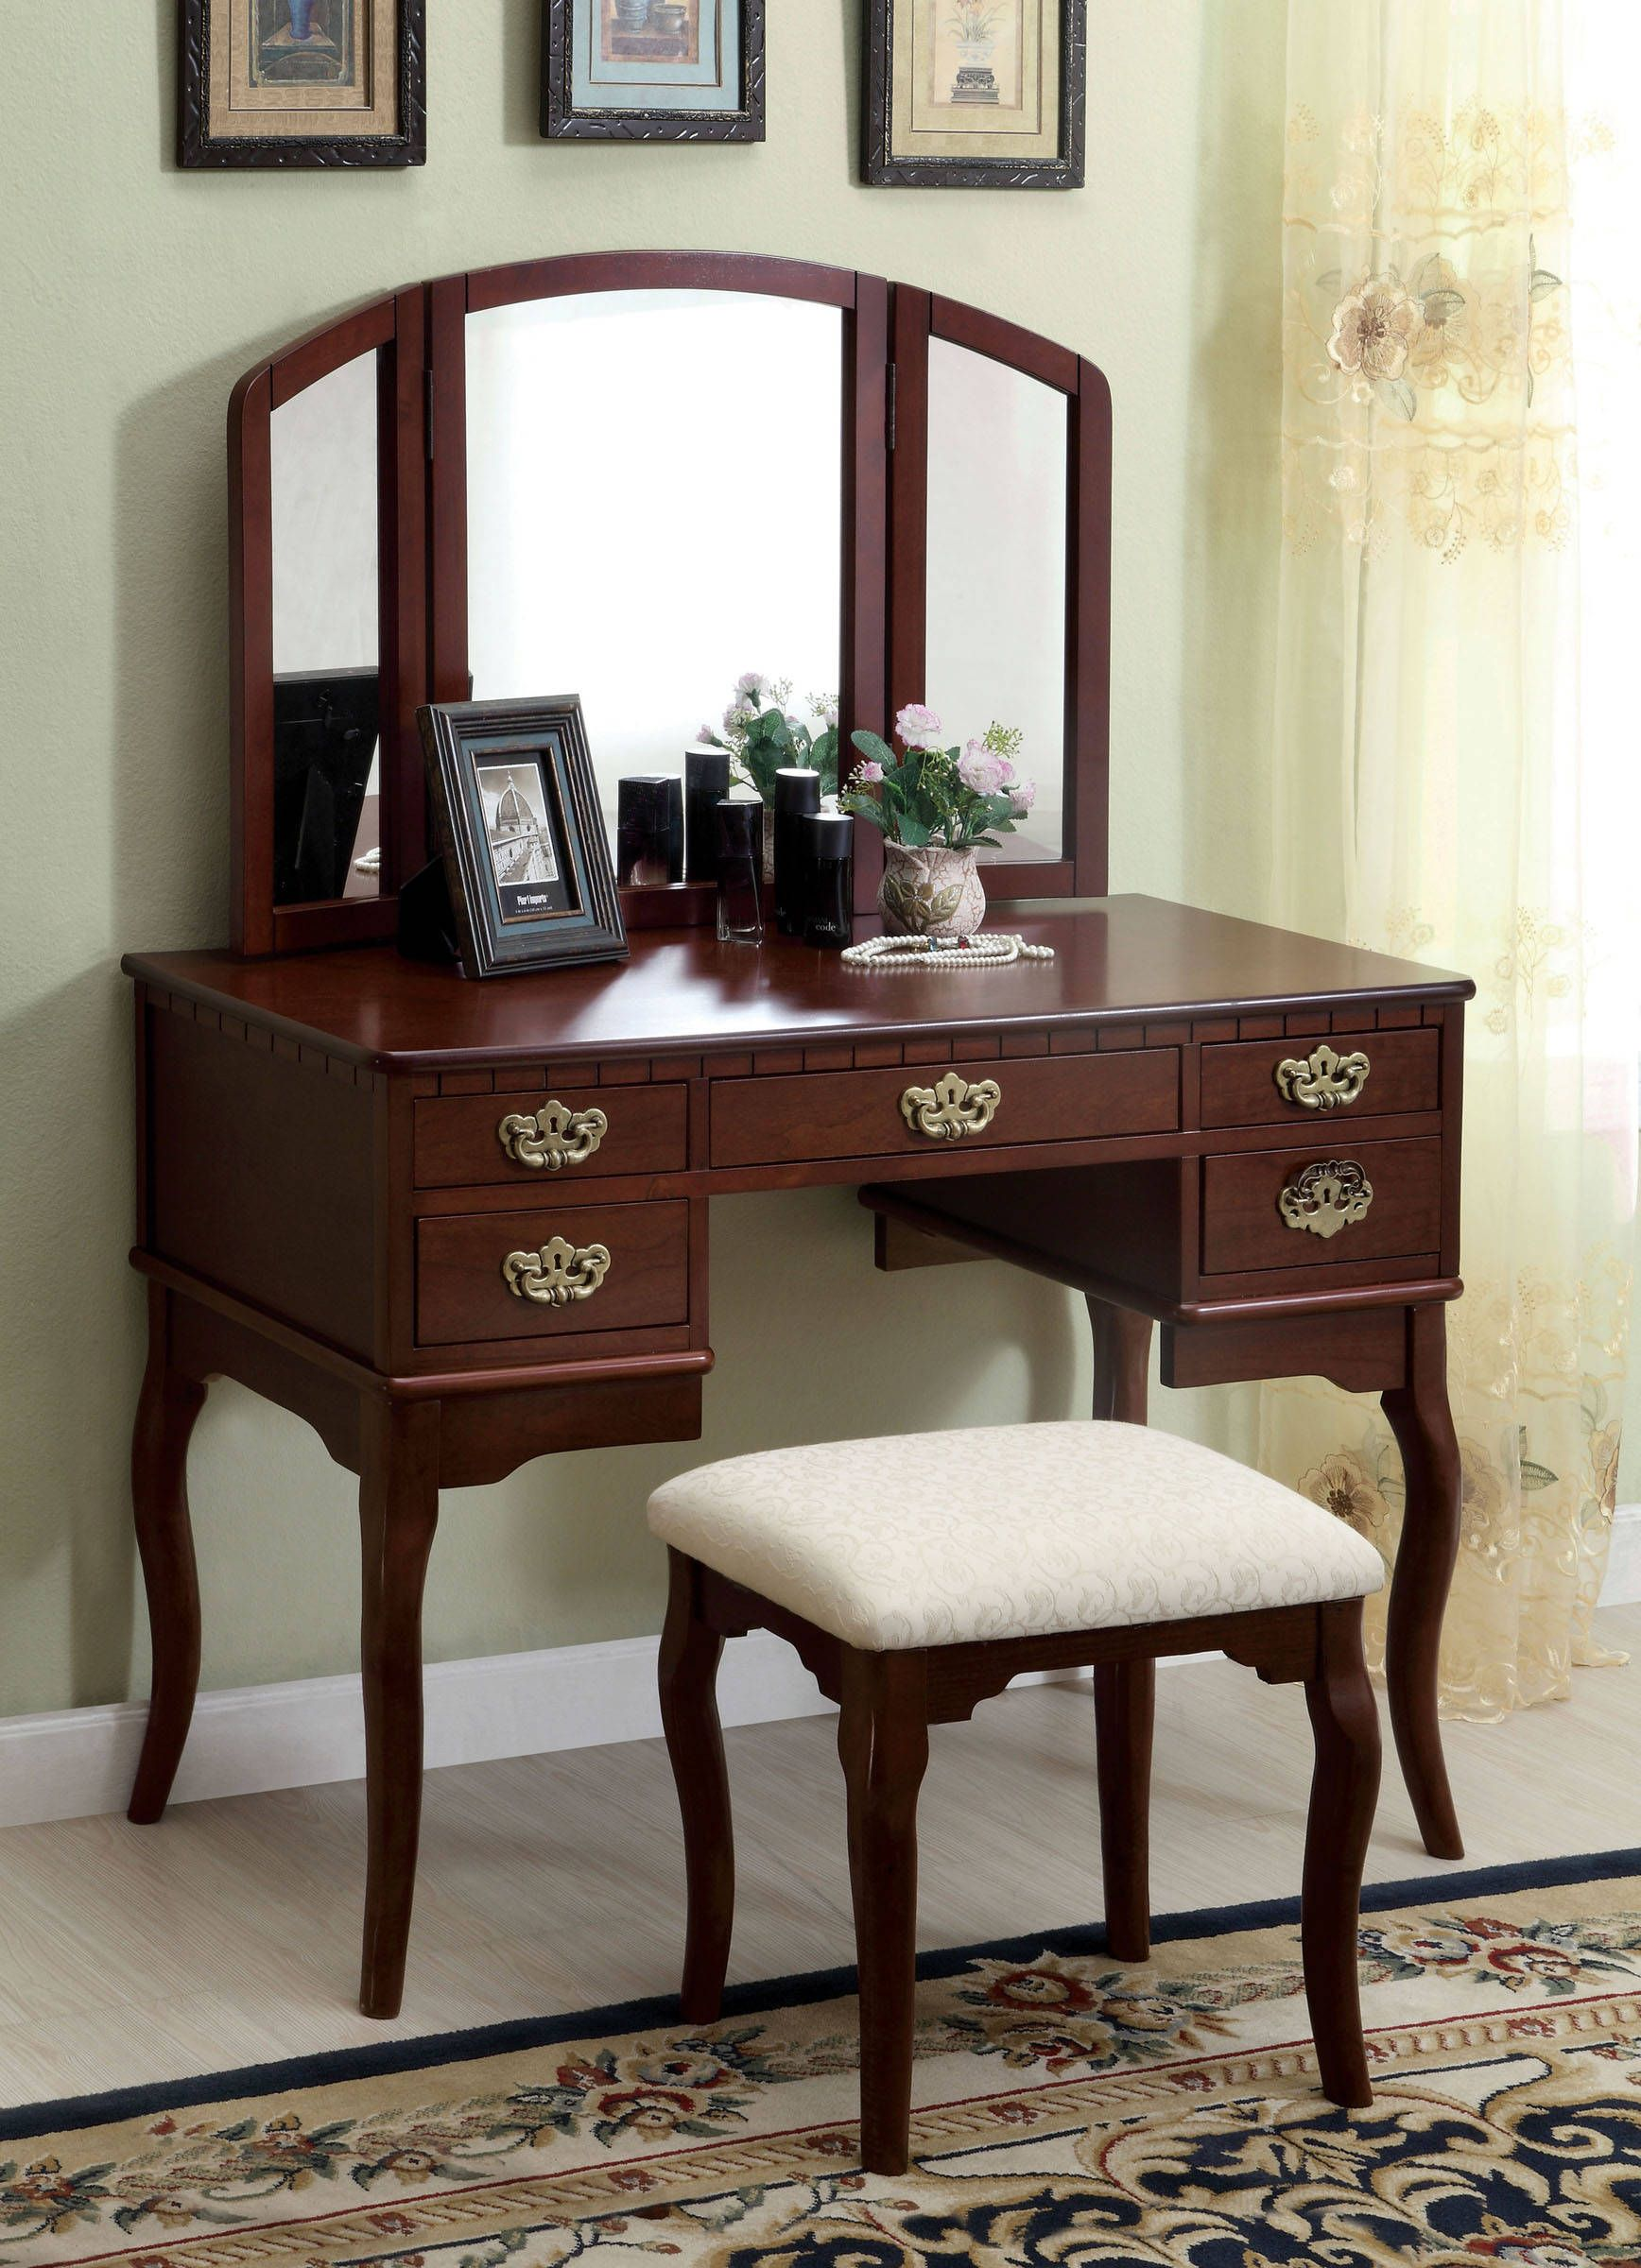 Furniture Of America Ashland Cherry Vanity Set in 2019 ...